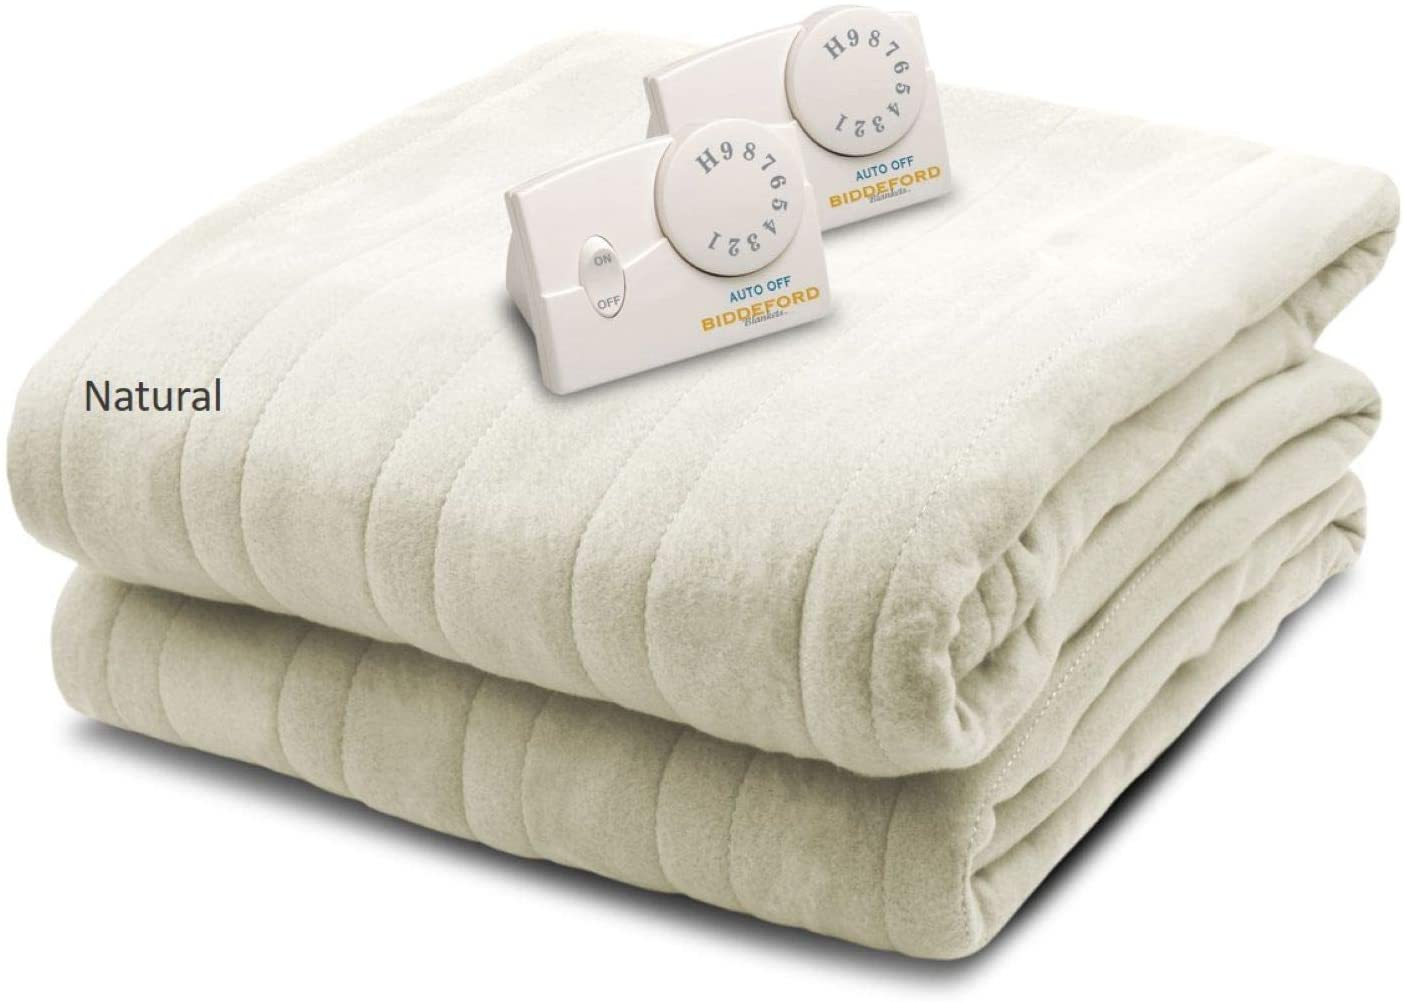 Biddeford Blankets Comfort Knit Heated Blanket, Queen, Natural: Home & Kitchen